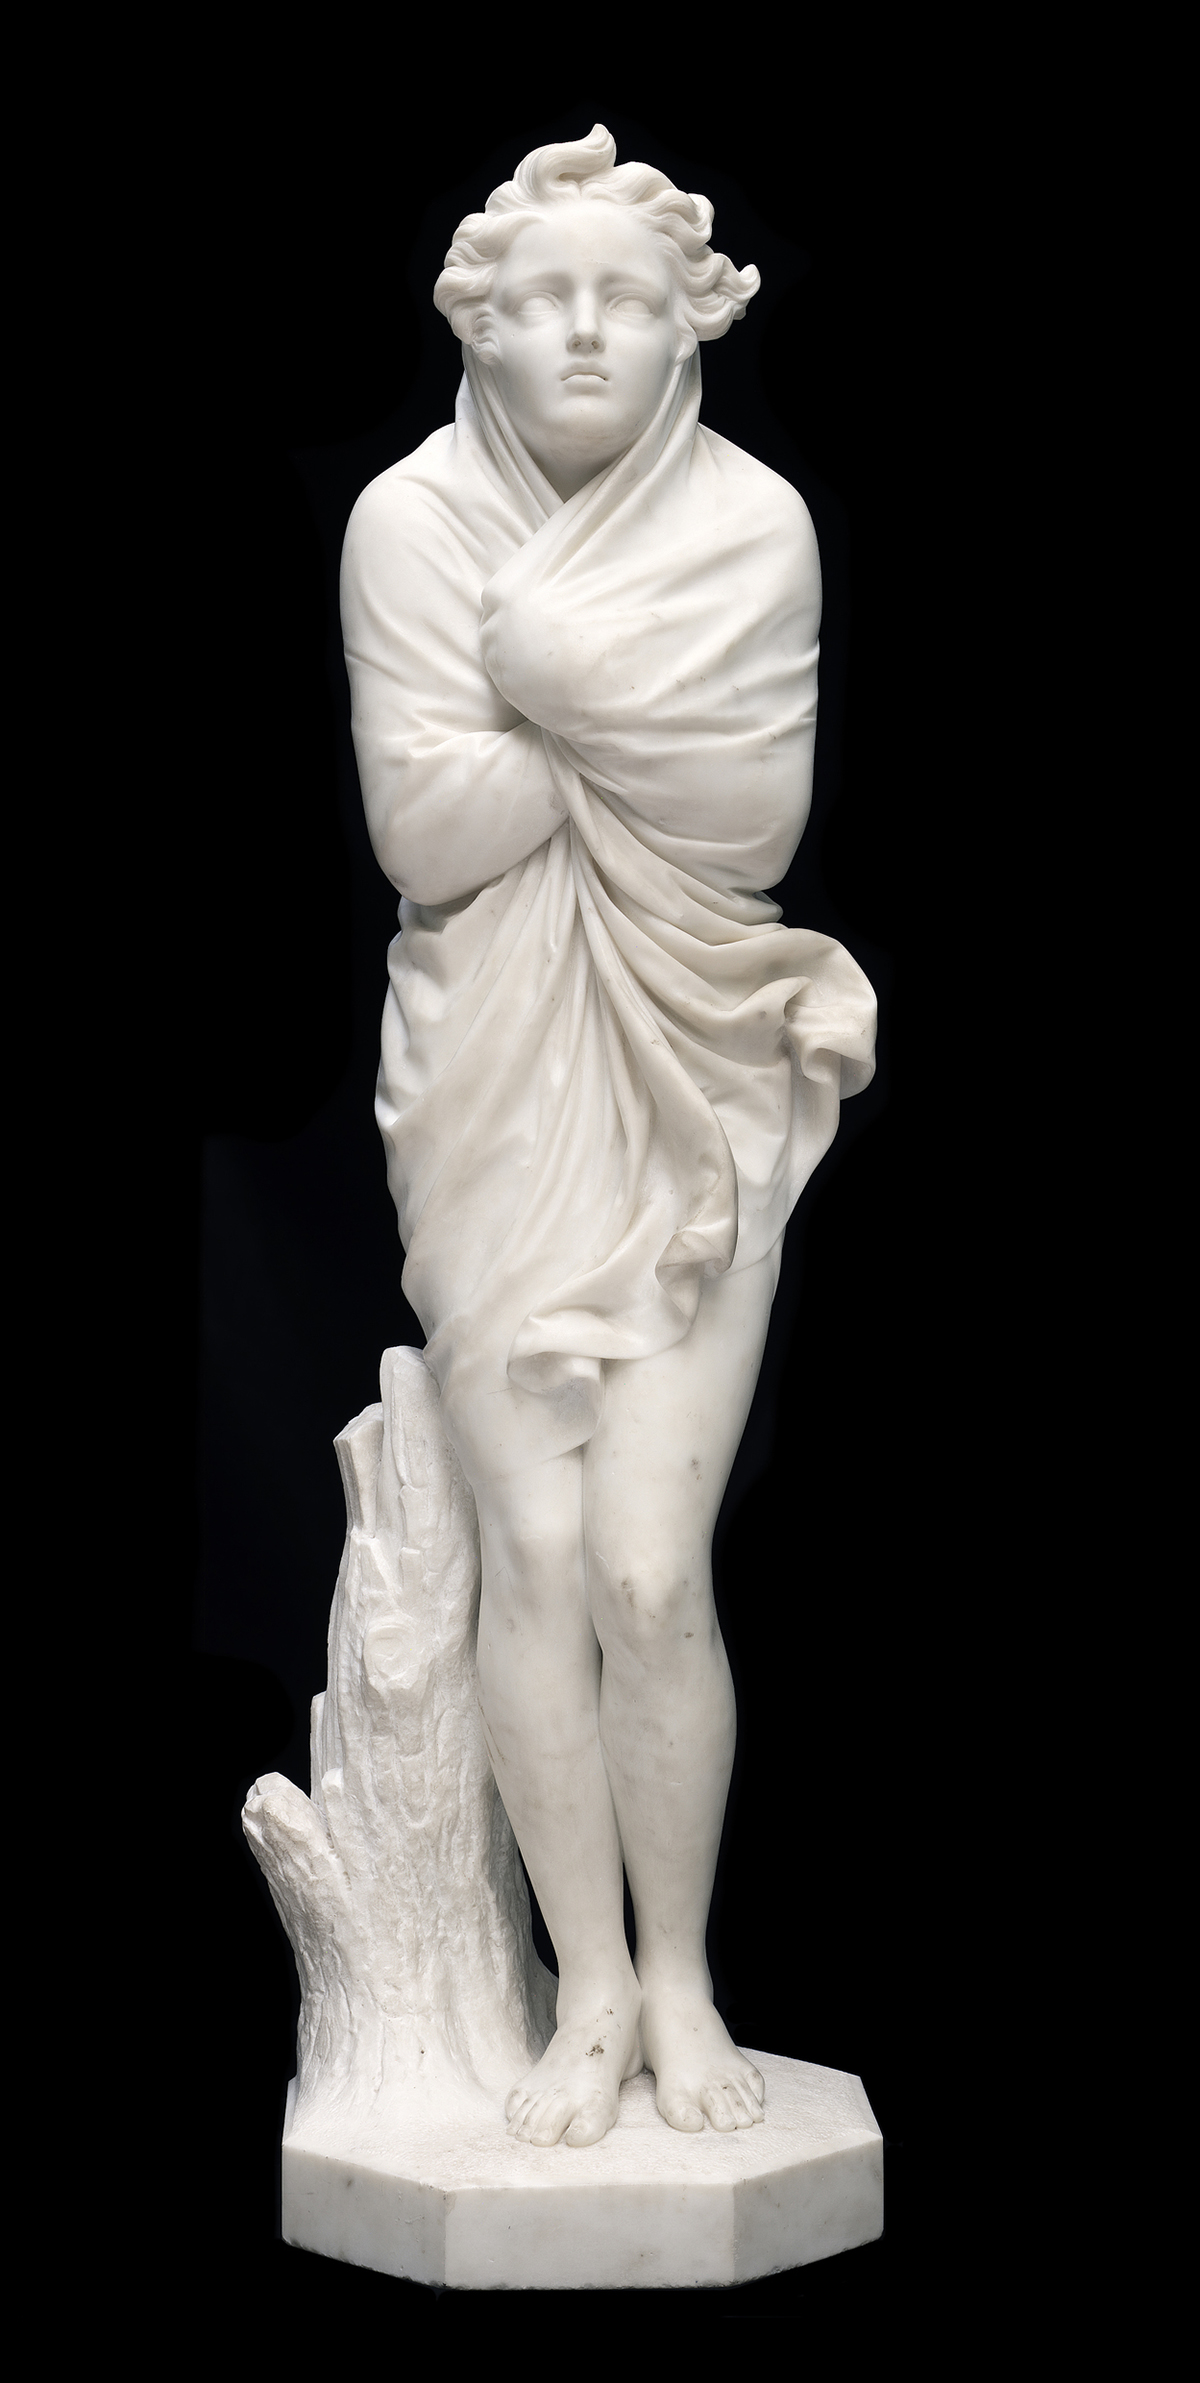 A marble sculpture of a female figure, wrapping a shawl tightly around herself against the cold